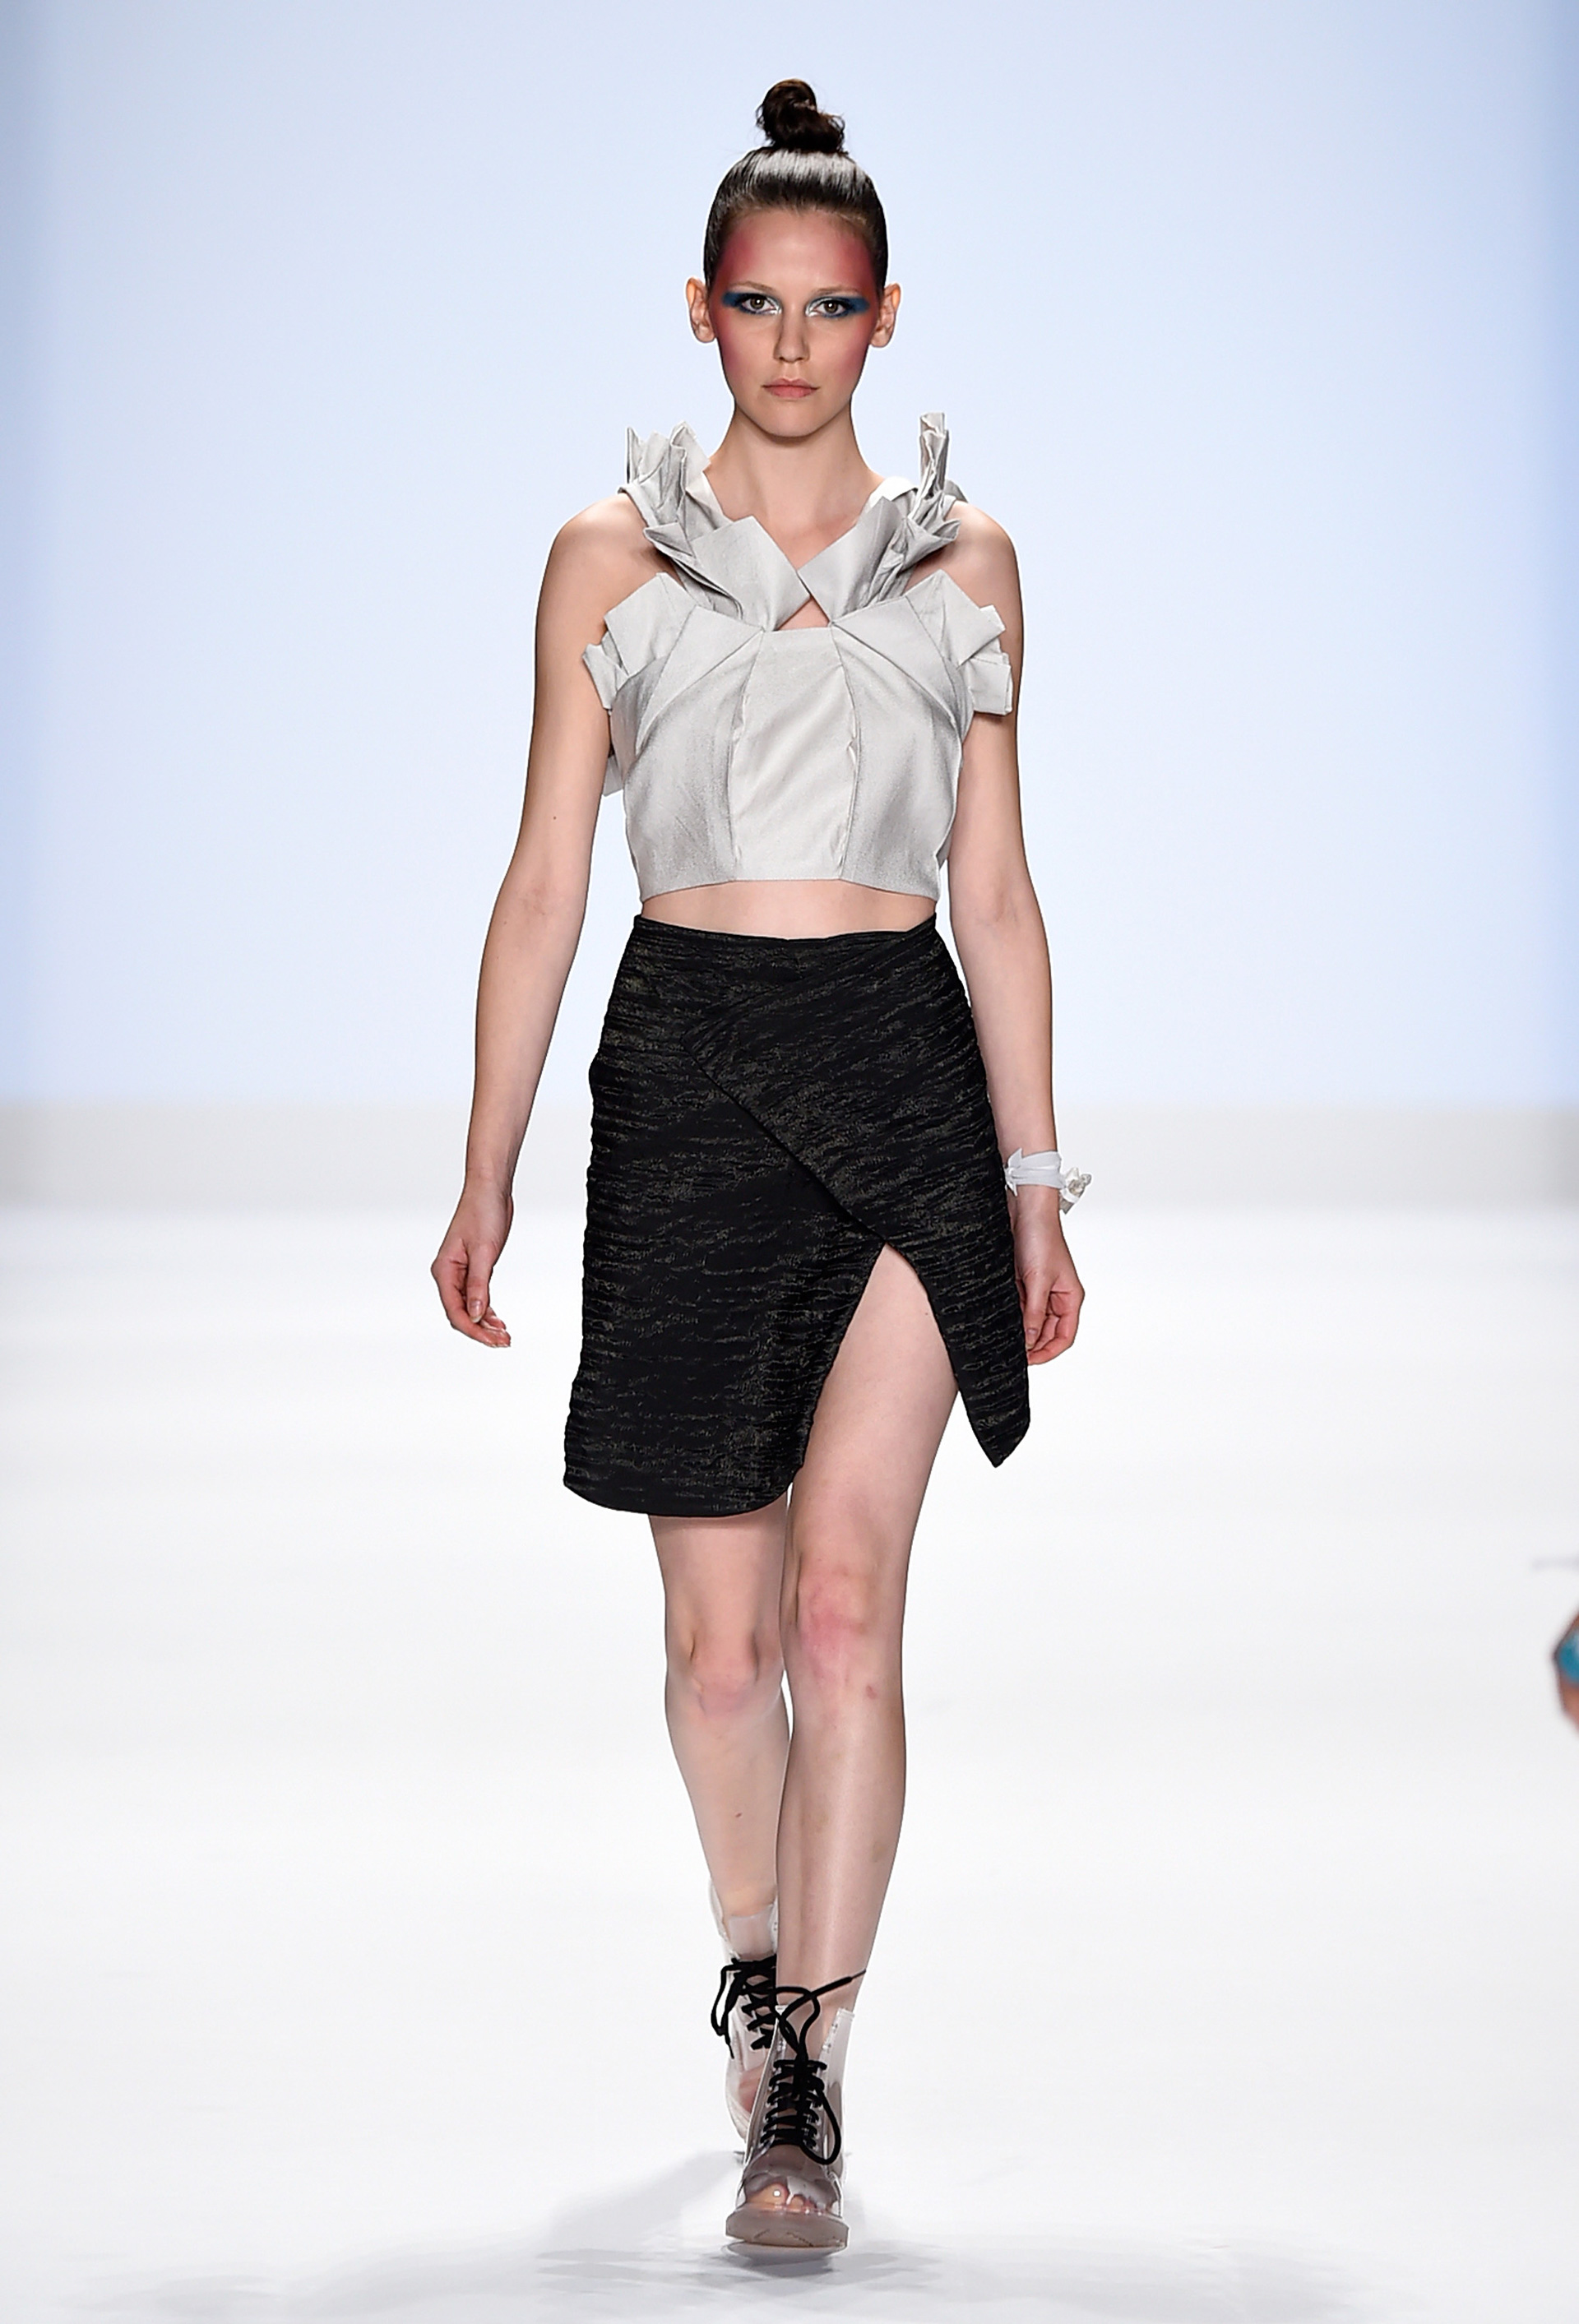 Project Runway's Fashion Week show 5